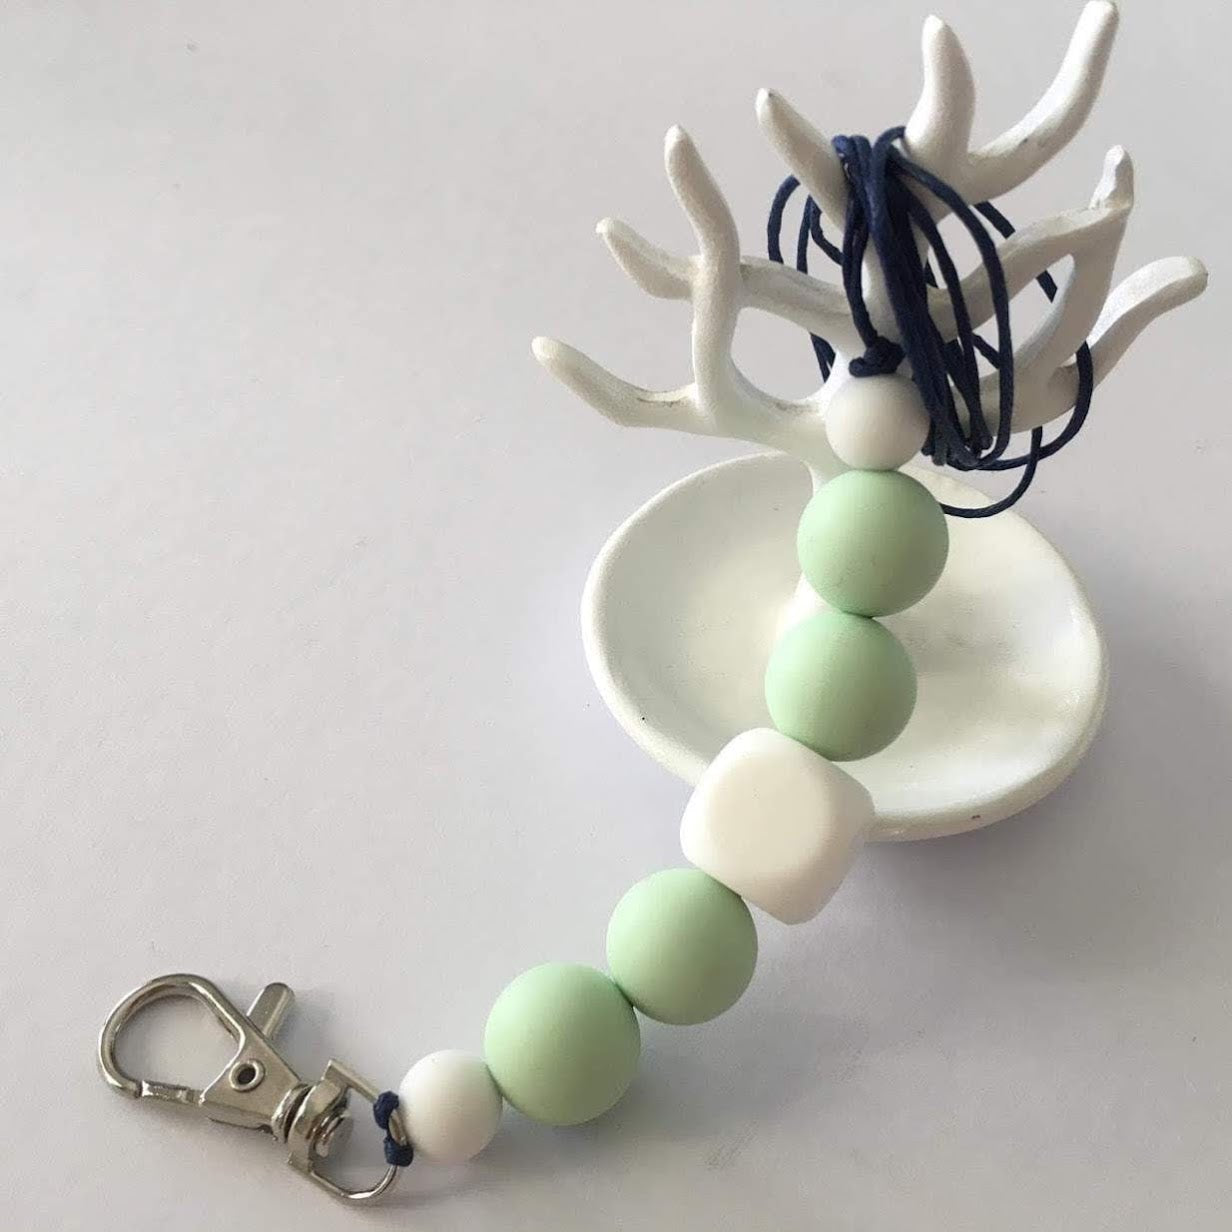 Lanyard - White and Mint